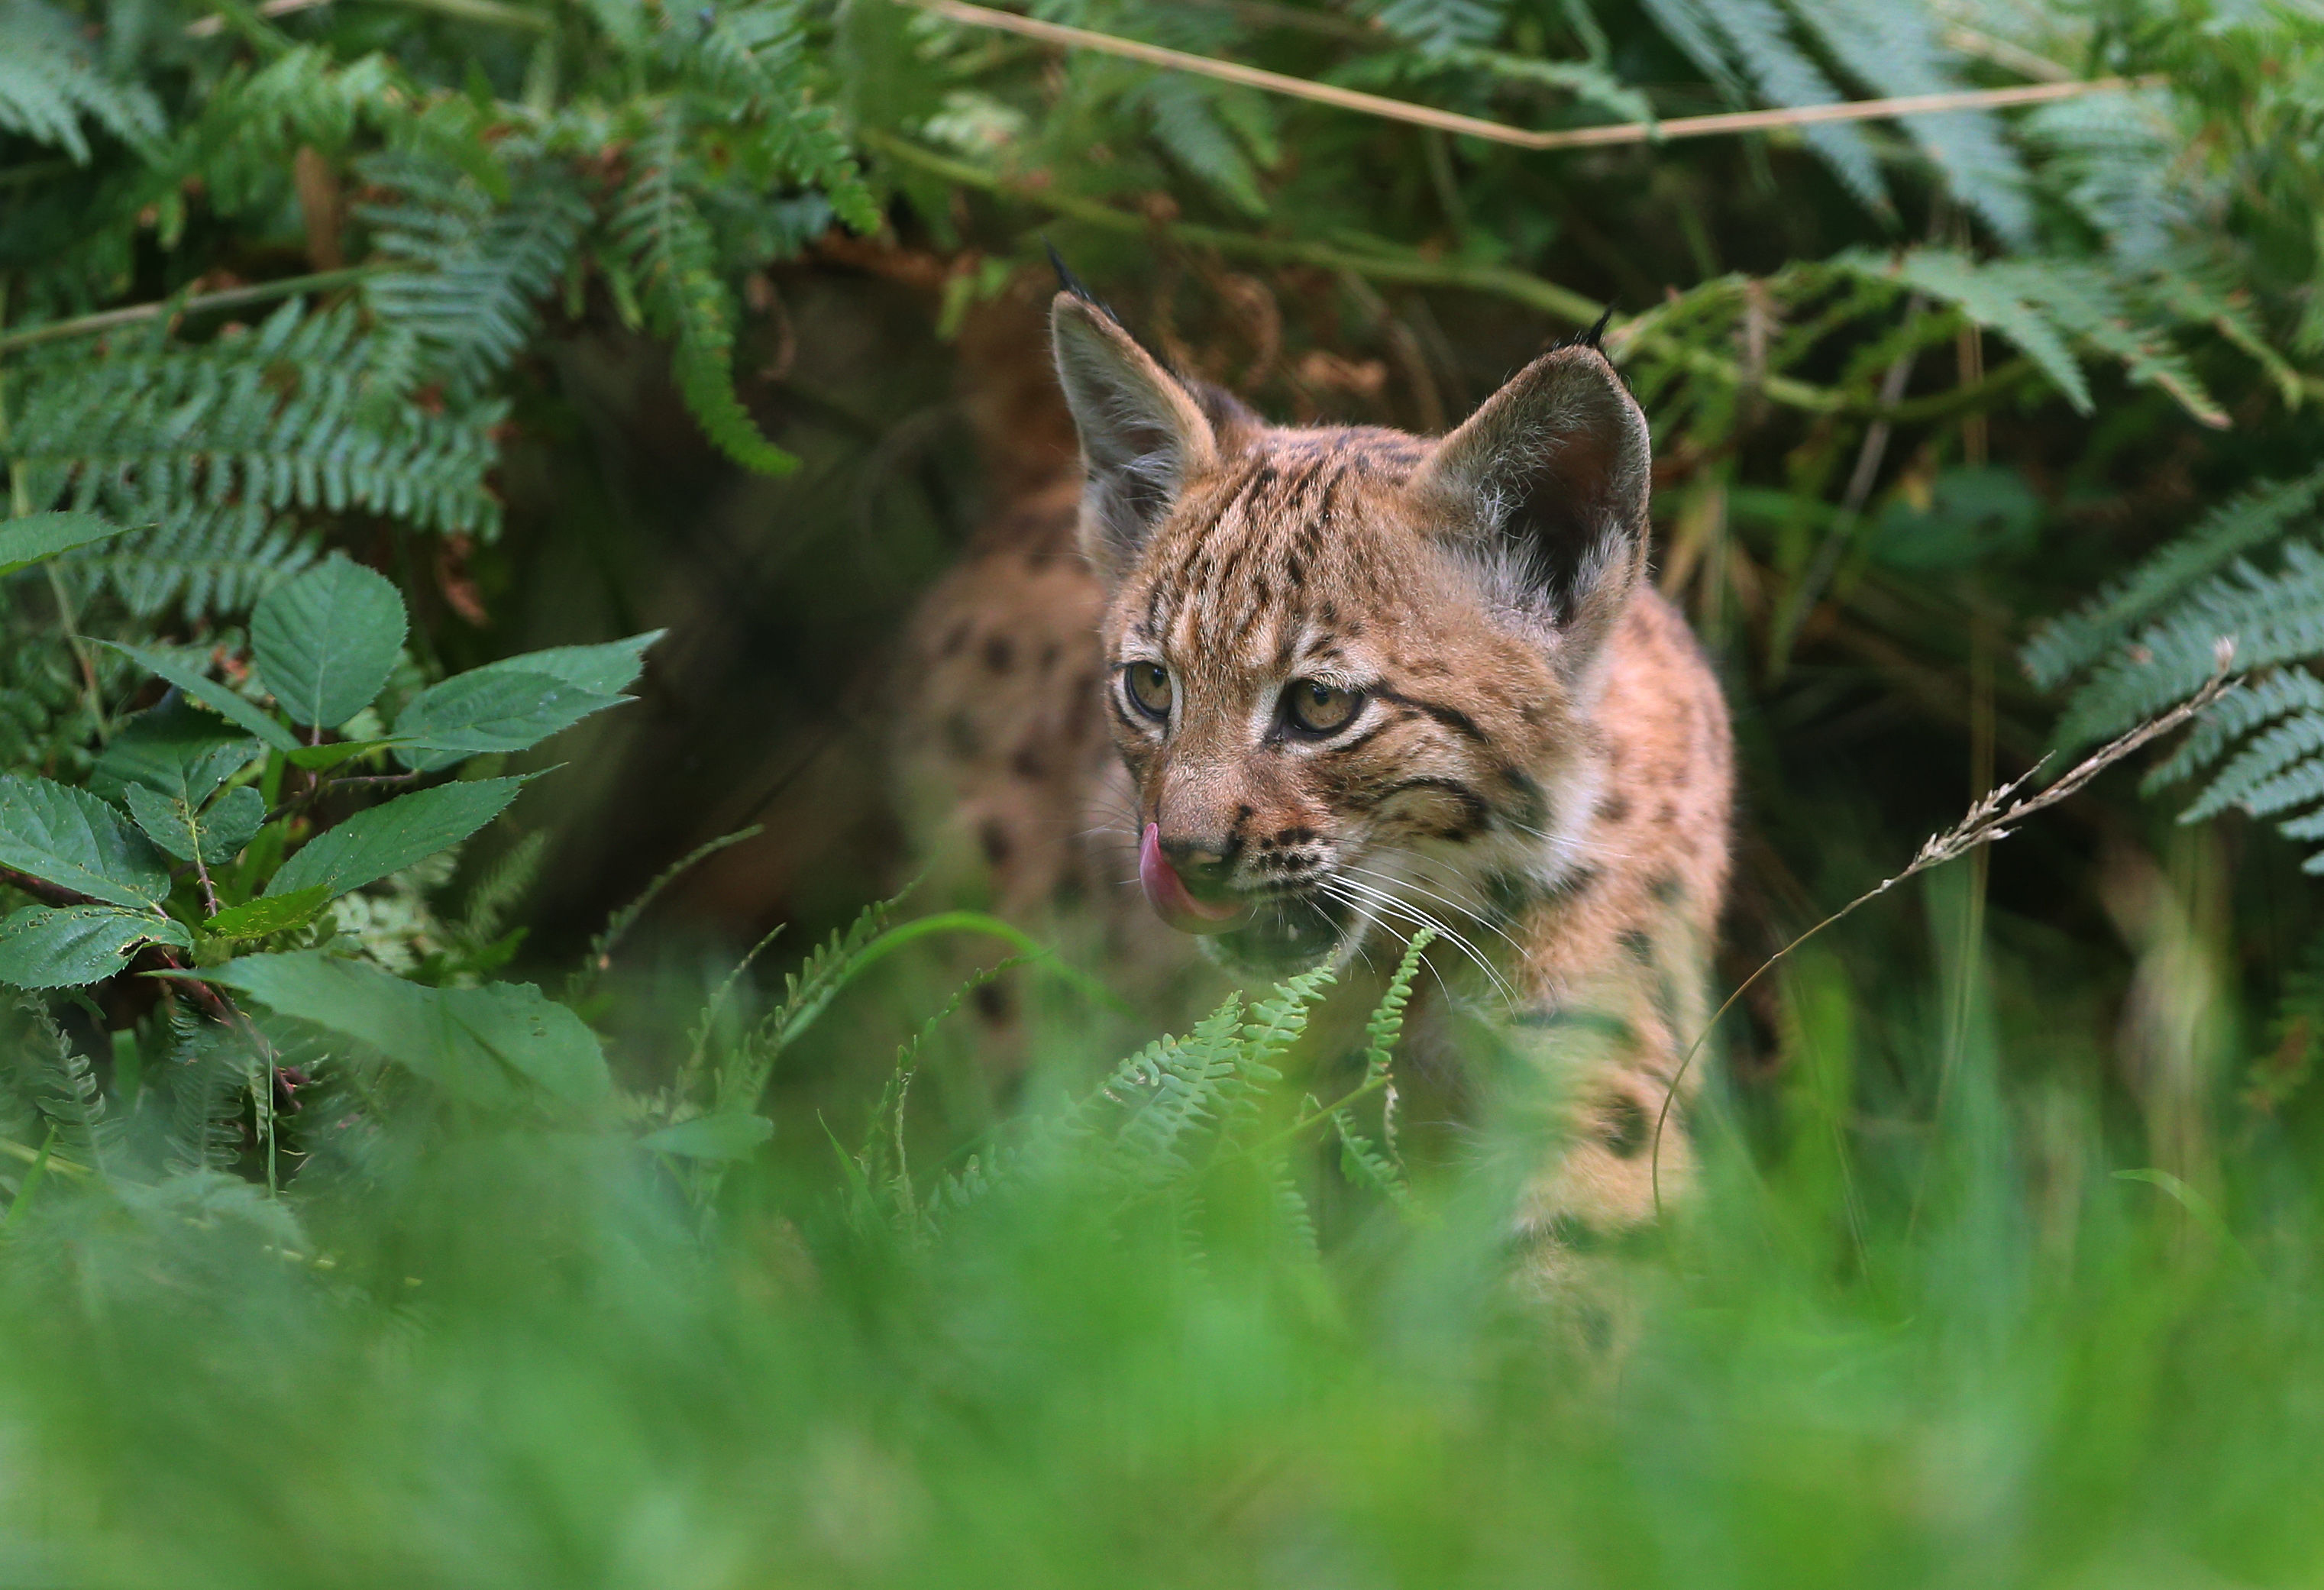 A 10-week-old Lynx kitten.